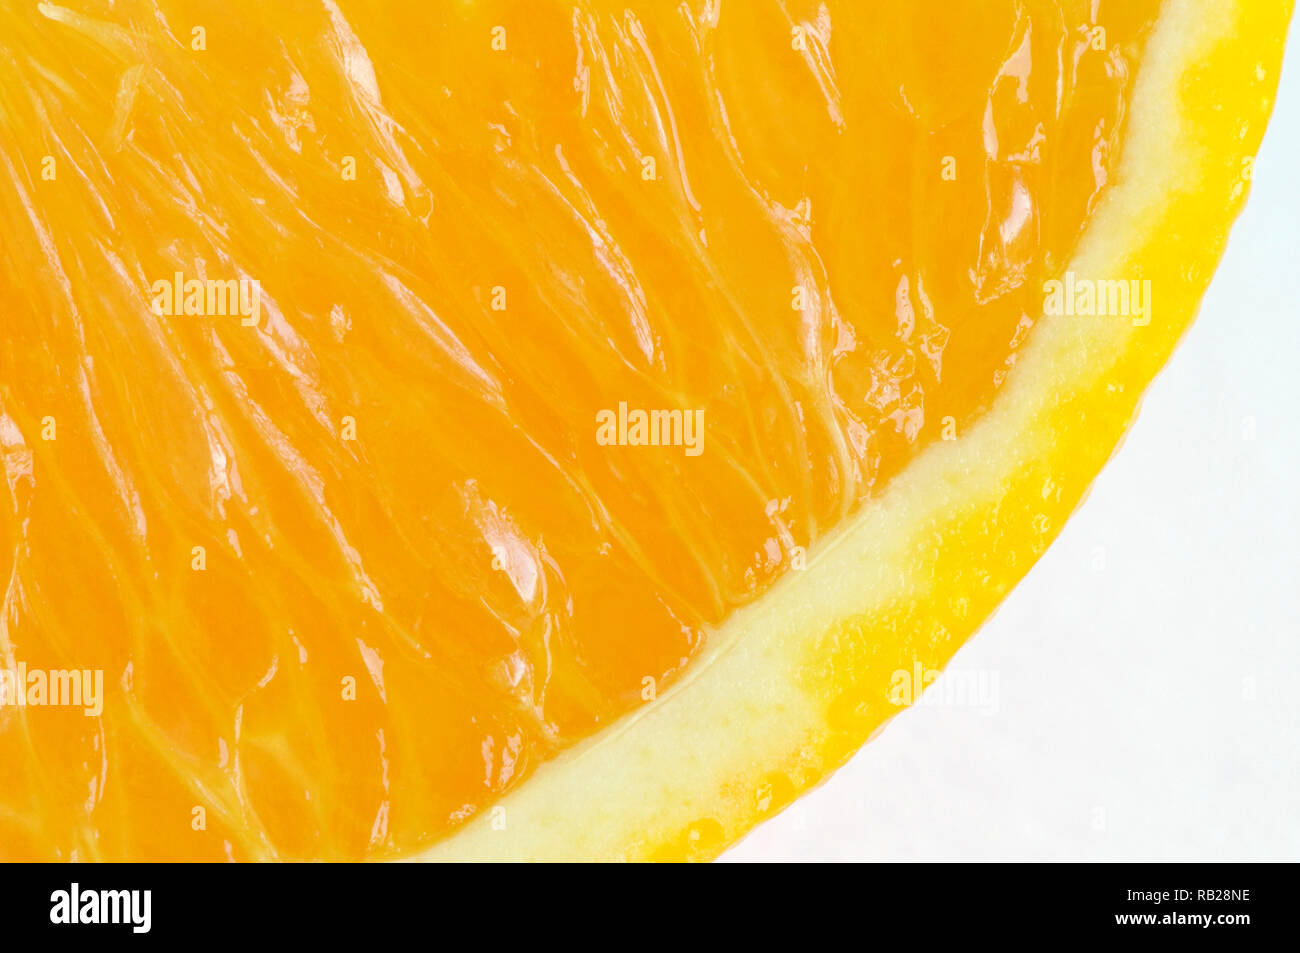 A partial cross section of a Navel orange slice (Citrus x sinensis) on white. - Stock Image